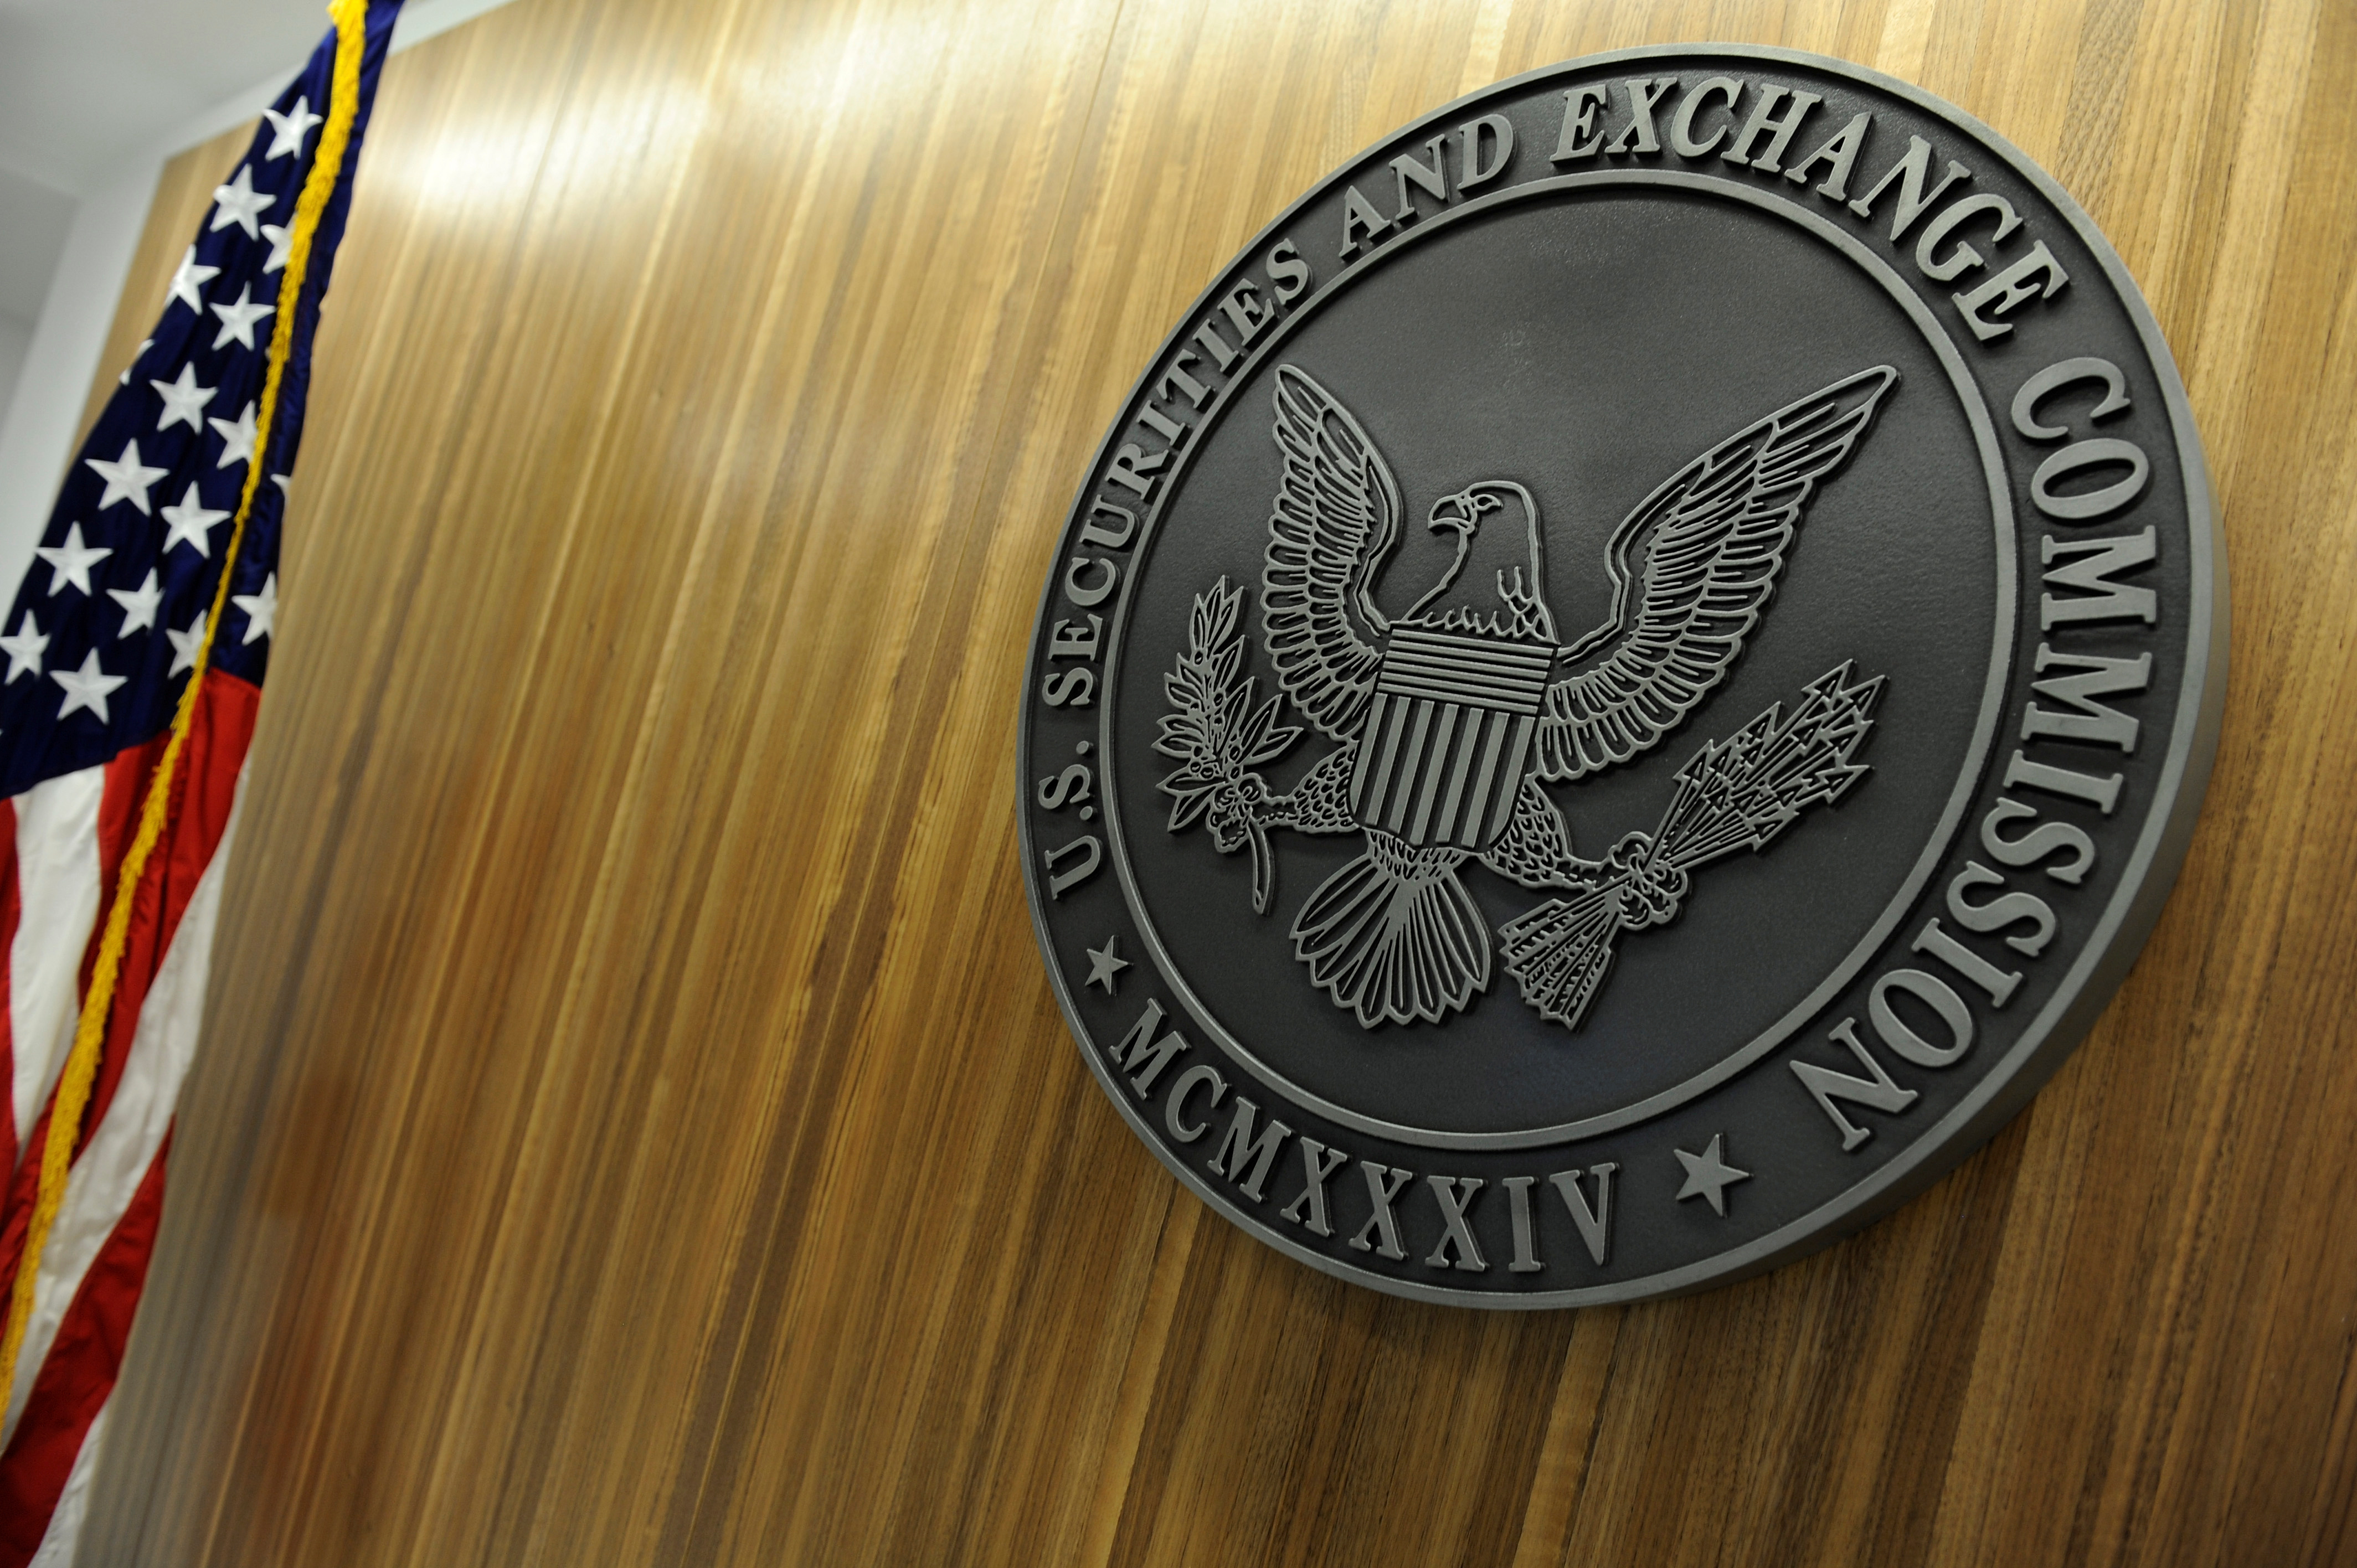 The seal of the U.S. Securities and Exchange Commission hangs on the wall at SEC headquarters in Washington, June 24, 2011. REUTERS/Jonathan Ernst/File Photo